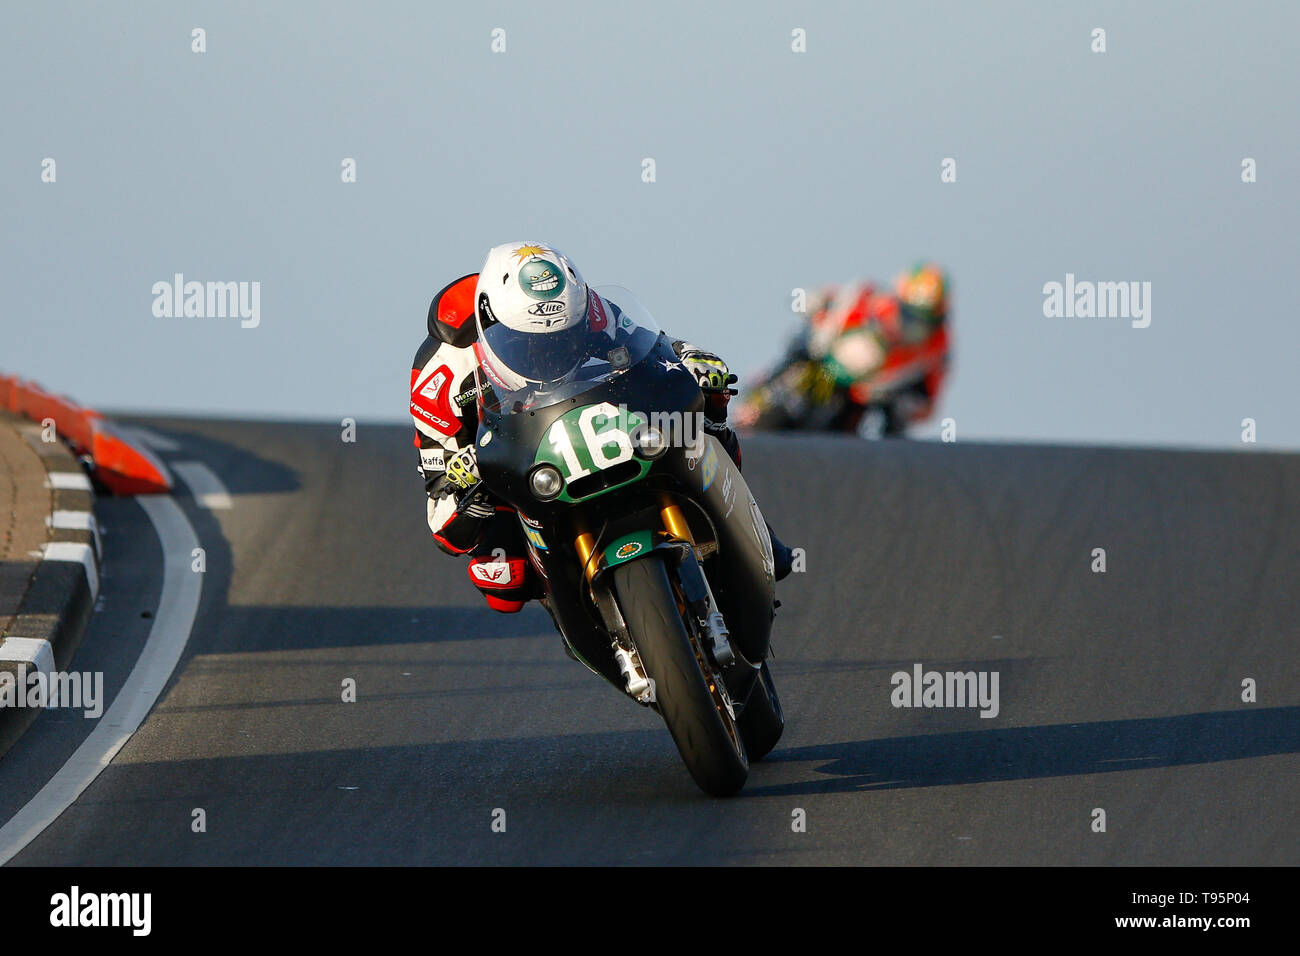 Portrush, Northern Ireland. 16th May, 2019. International North West 200 Motorcycle road racing, Thursday practice and evening racing; Italy's Stefano Bonetti wins the SuperTwin race on the Speed Motor BMW ahead of Jamie Coward (Prez Racing Yamaha) Credit: Action Plus Sports/Alamy Live News - Stock Image